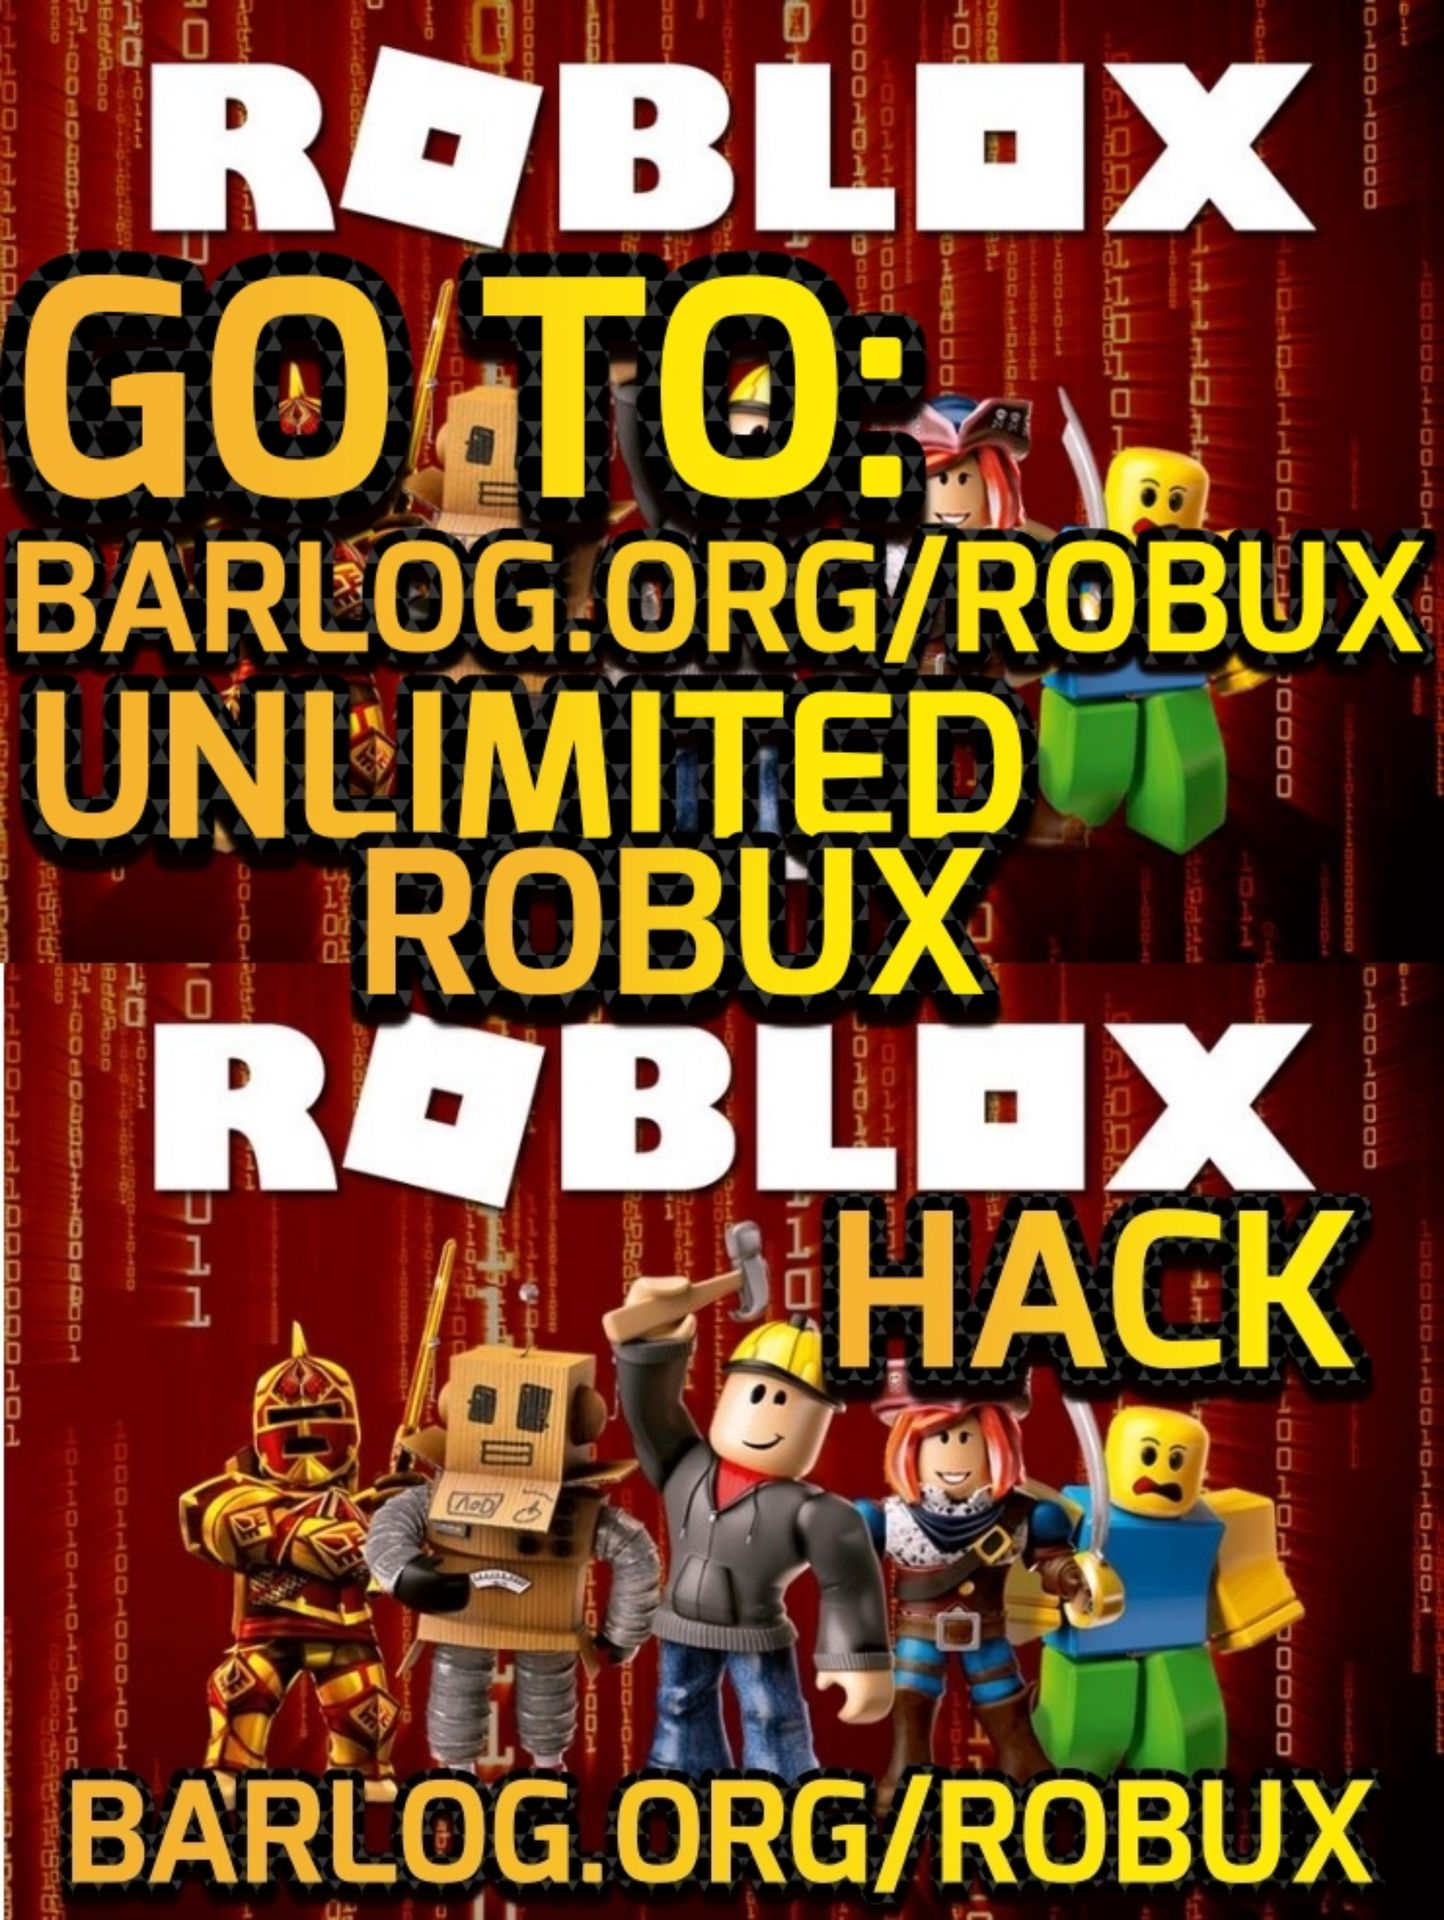 Robux Generator.org Roblox Hack Cheats Robux Hack Cheats Robux Generator Wattpad